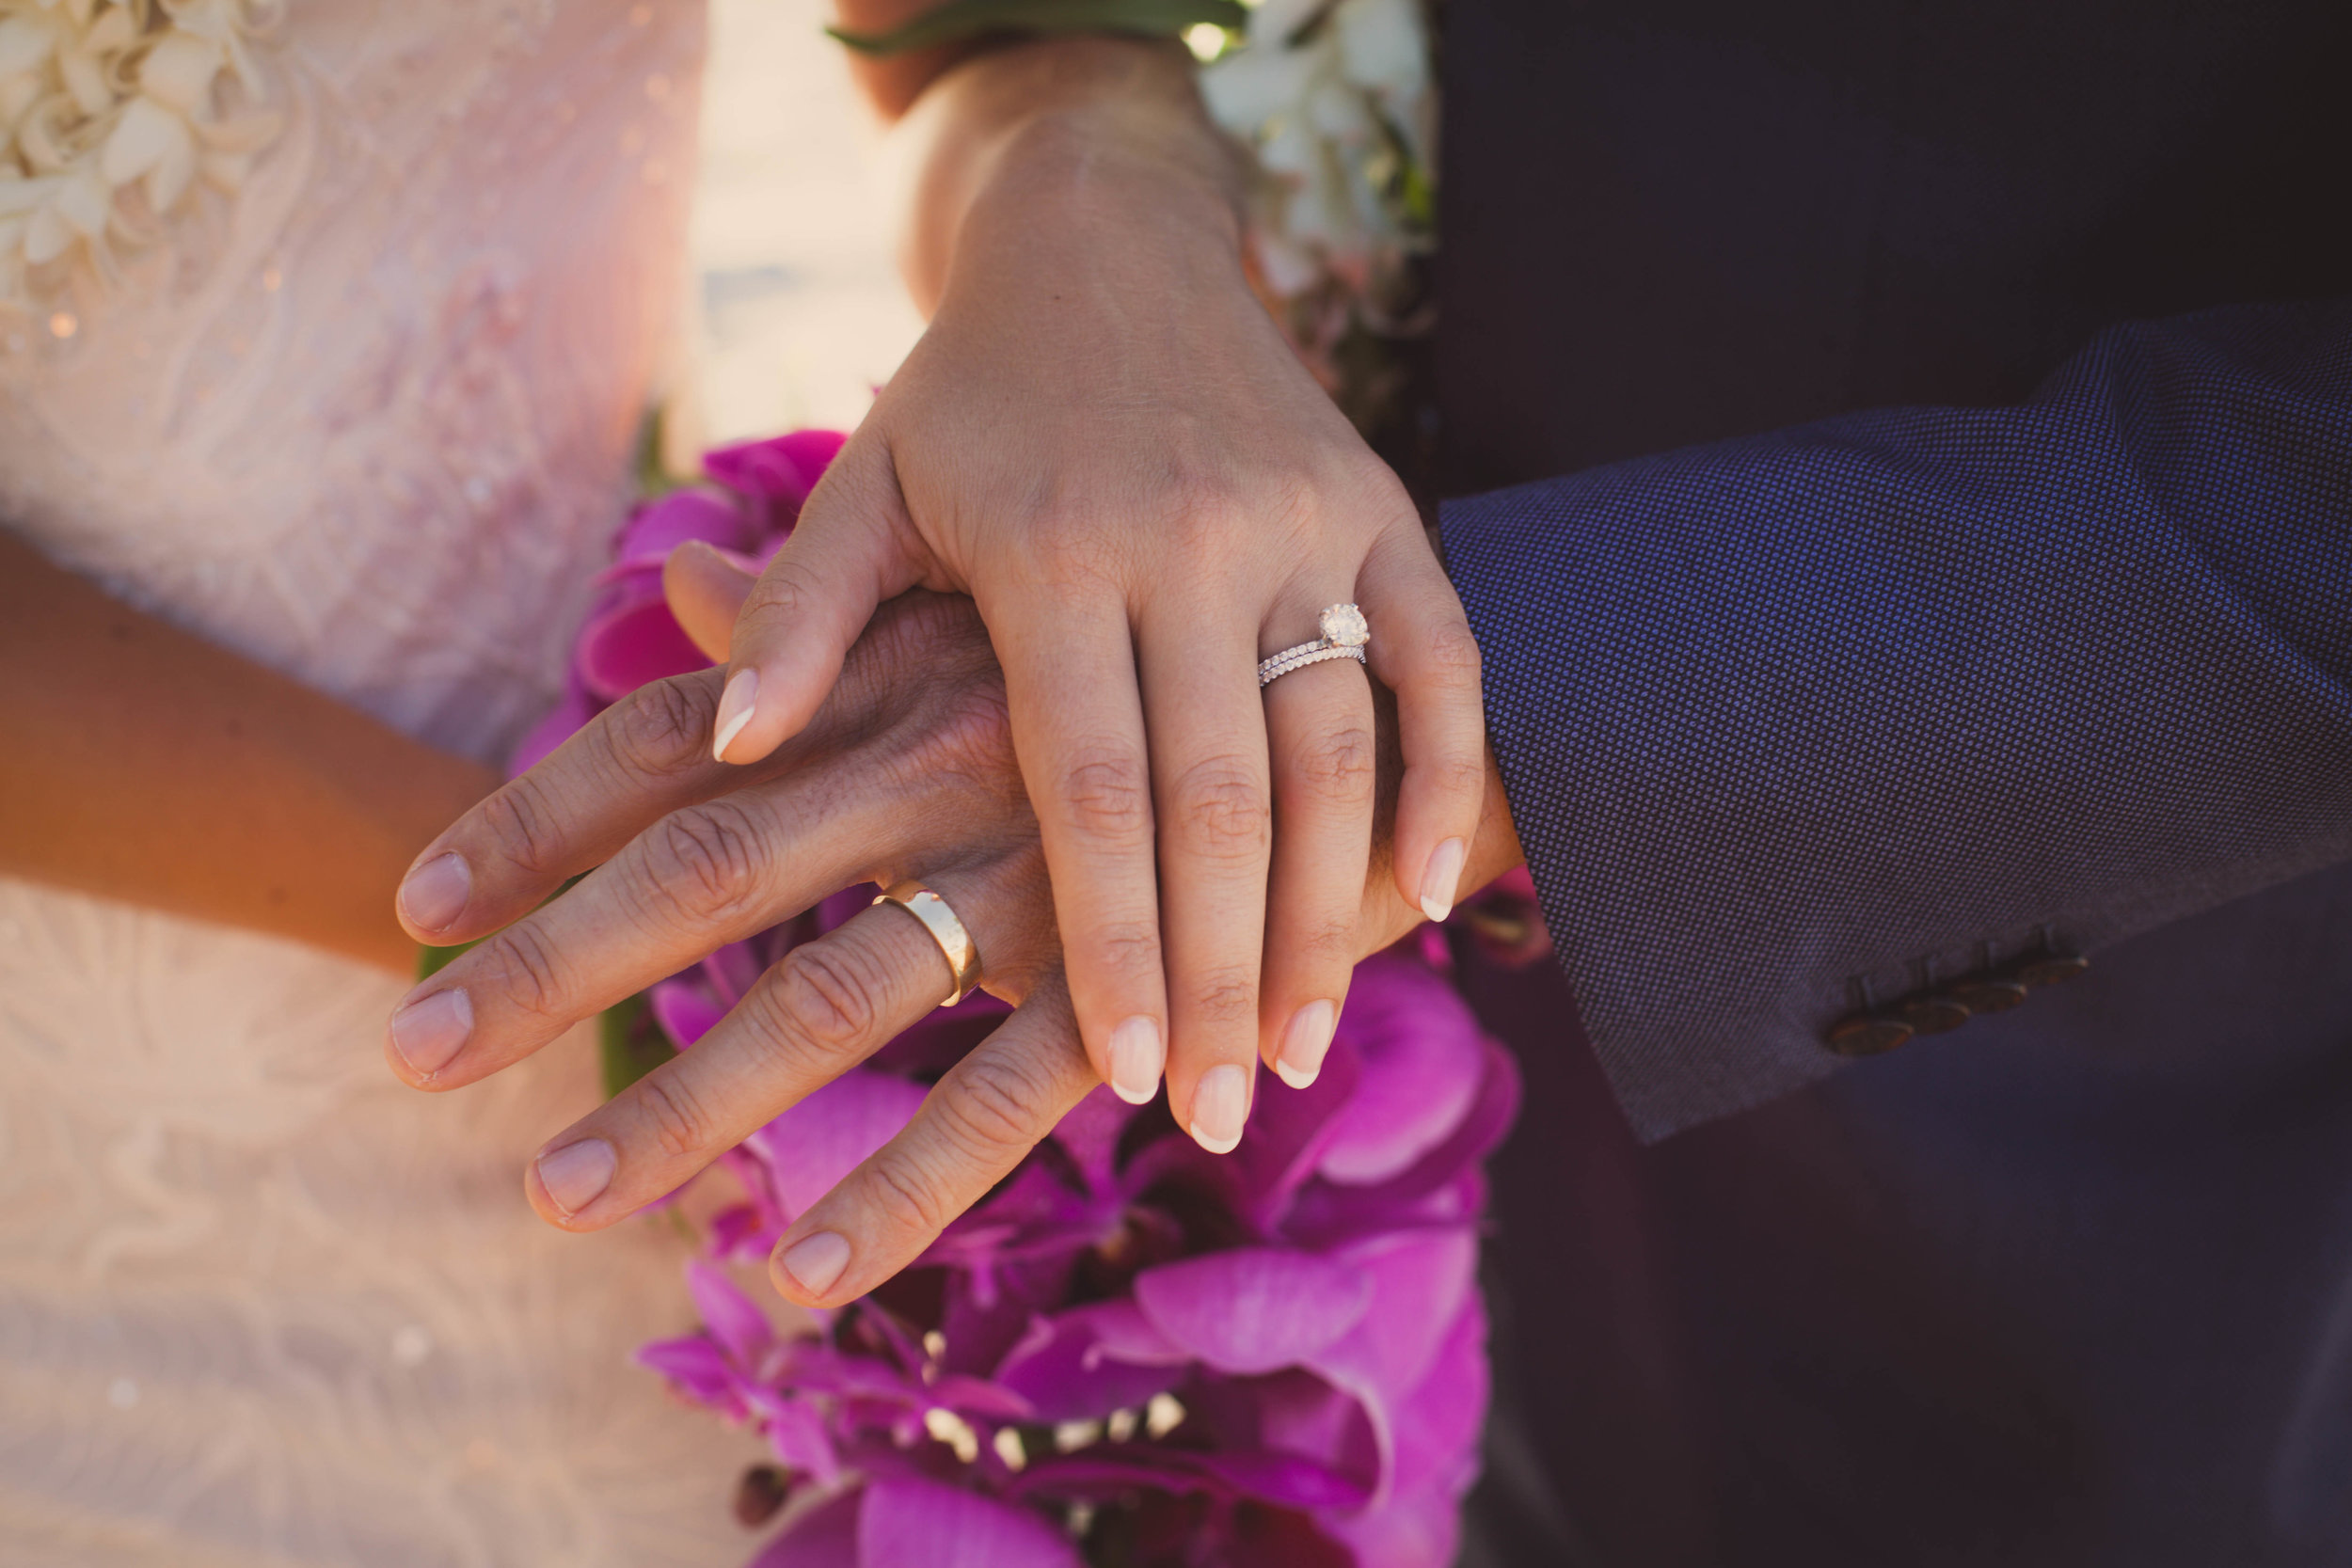 big island hawaii fairmont orchid beach wedding © kelilina photography 20170812180334-1.jpg